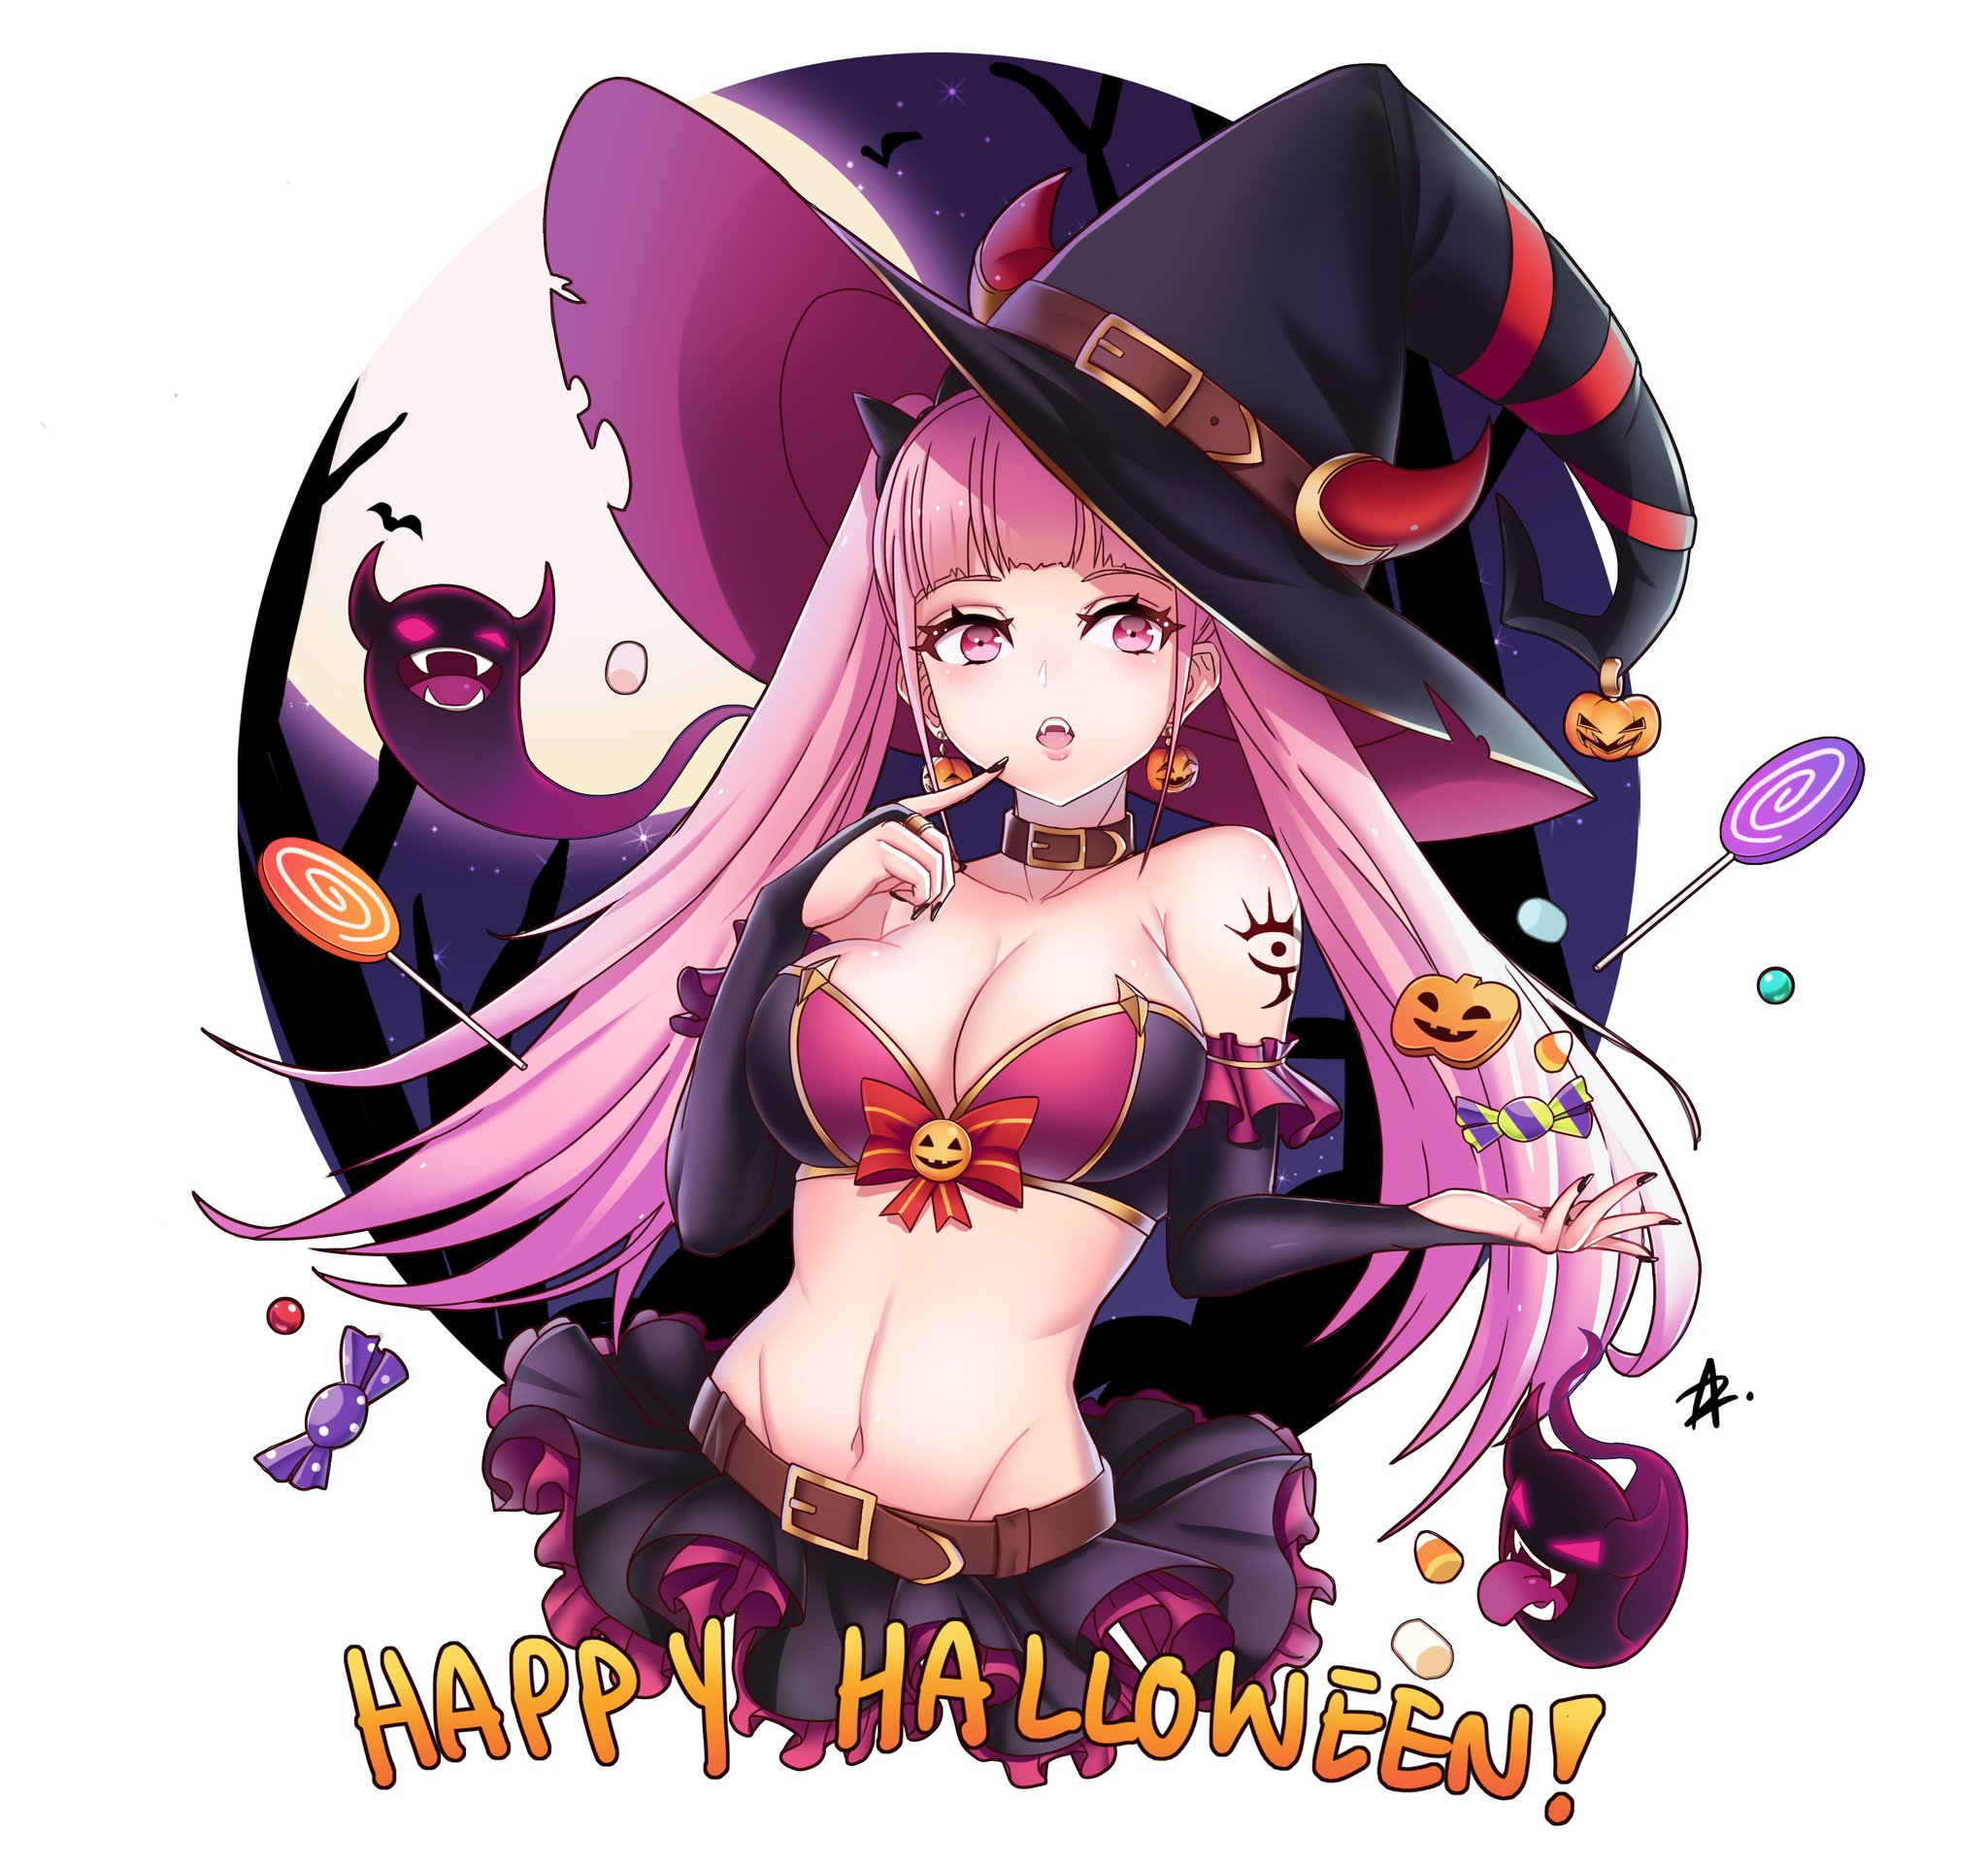 Bildergebnis für happy halloween anime girls lewd